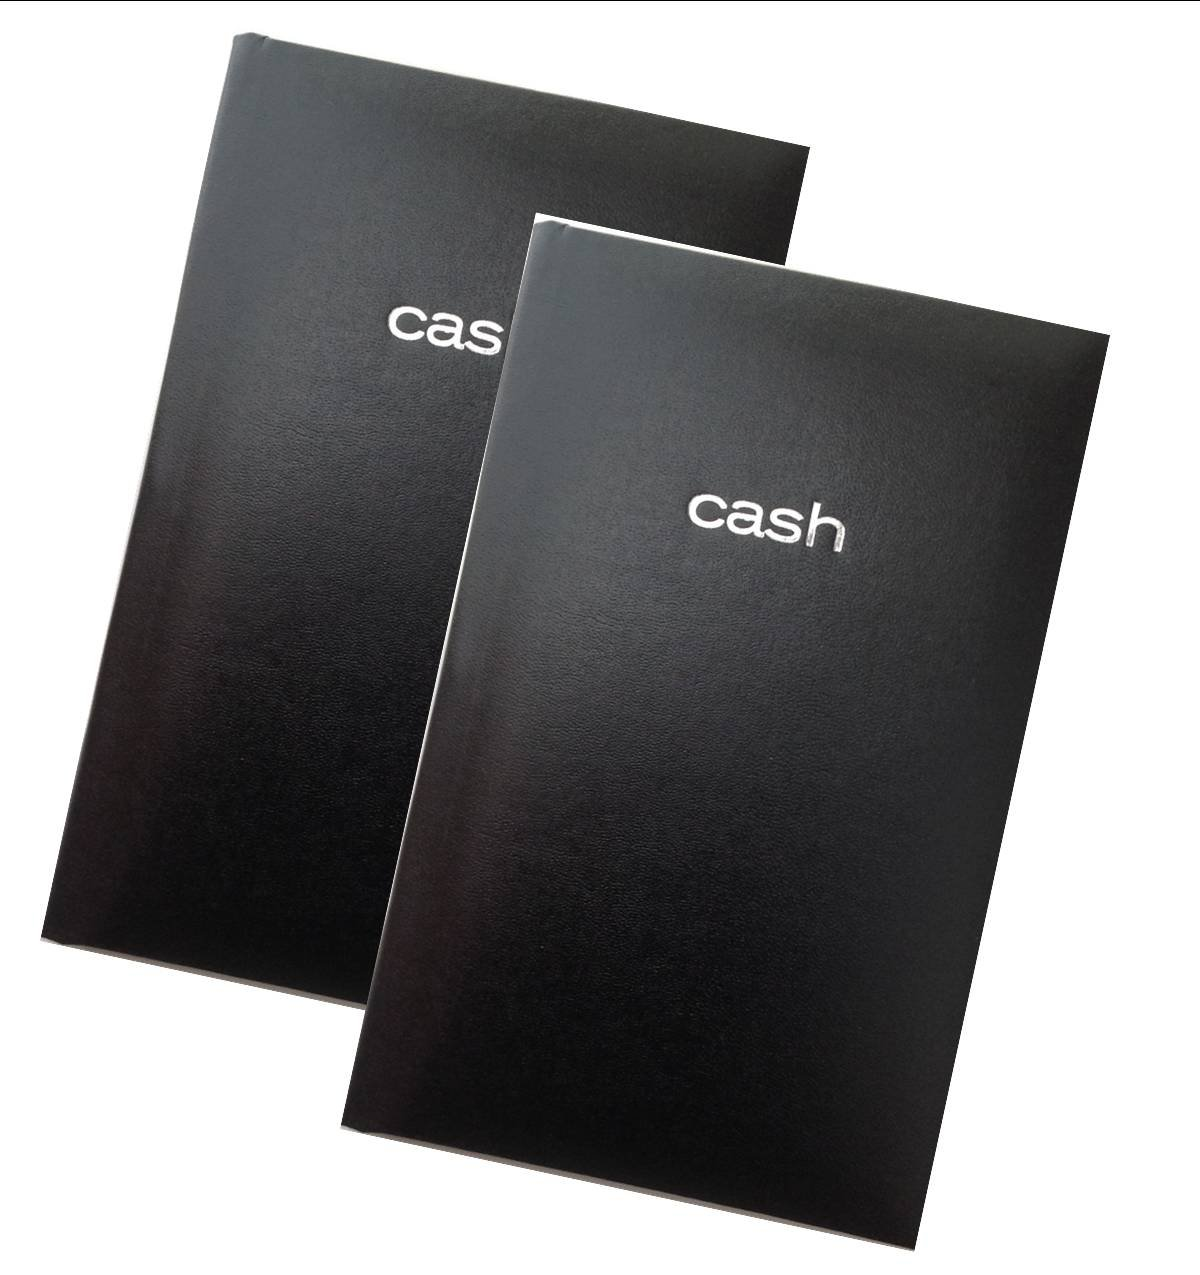 Mead Cash Book, 7-15/16 x 5-1/8 inches, 144 pages Hardbound Black Cover (64582) - Set of 2 Books